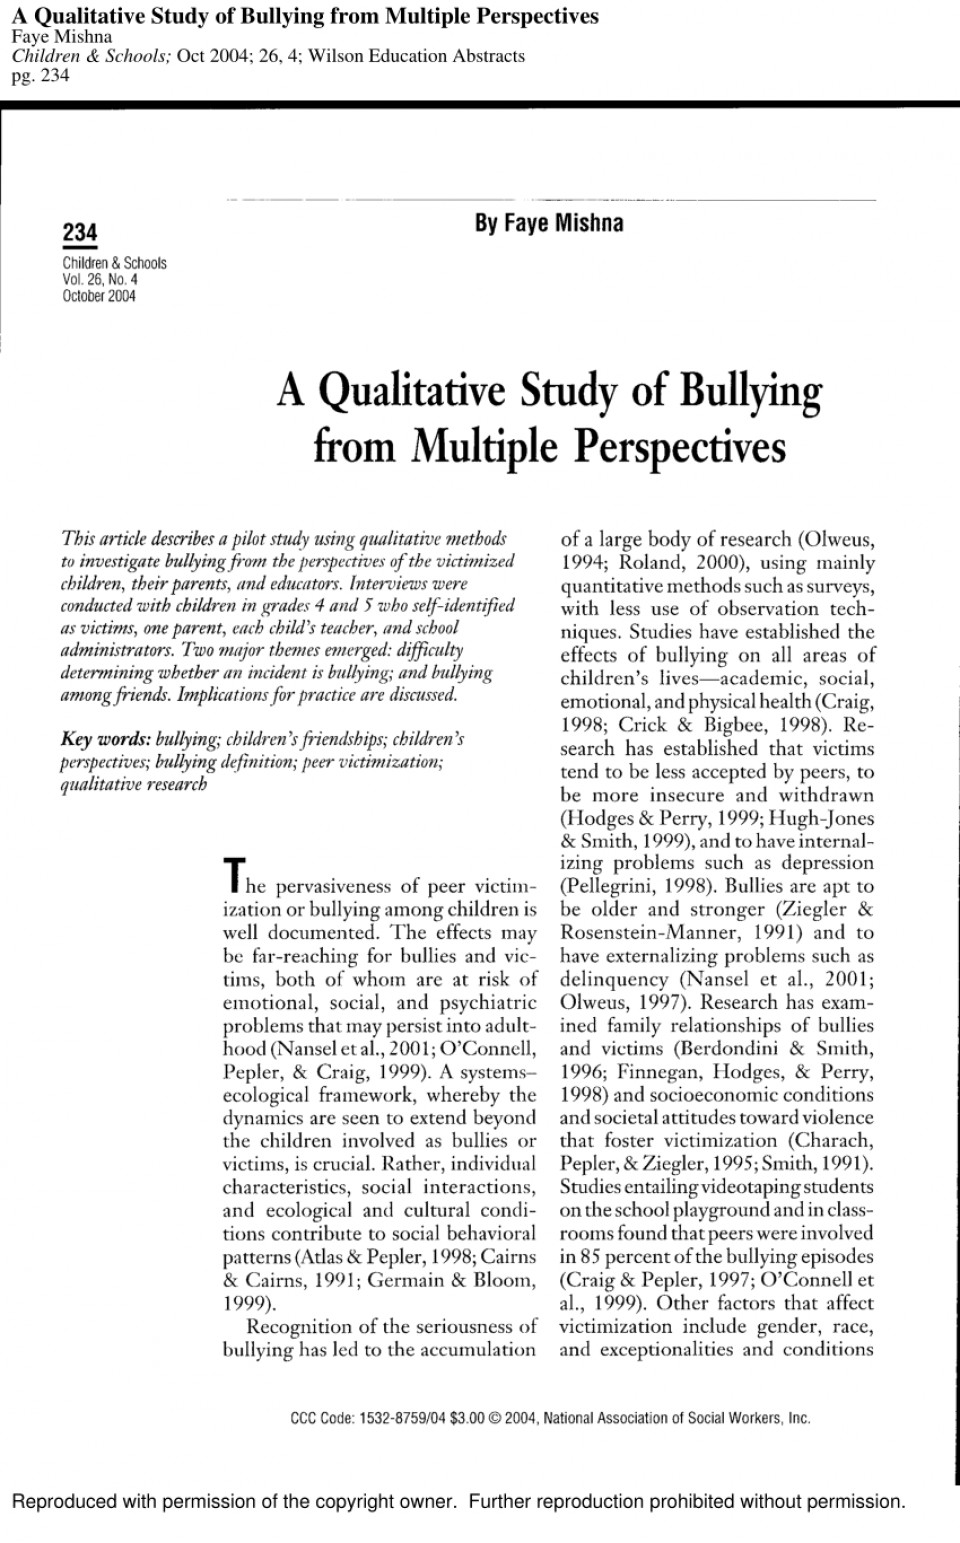 003 Bullying Research Paper Pdf Imposing Short About Quantitative Effects Of 960